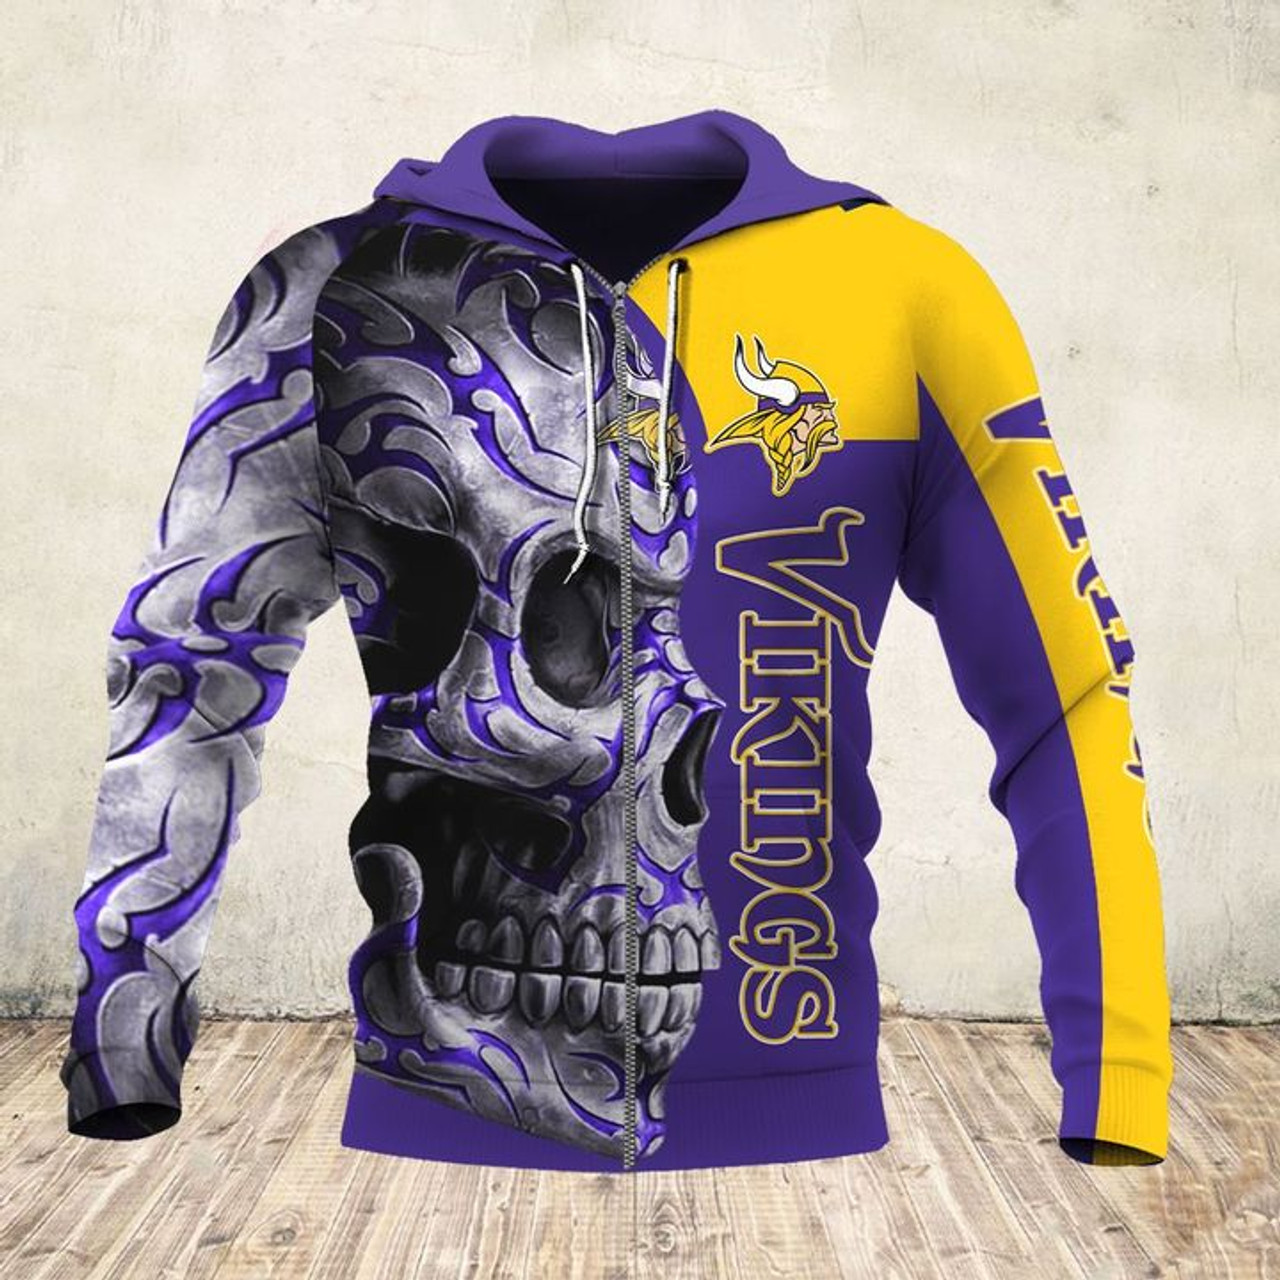 **(OFFICIAL-N.F.L.MINNESOTA-VIKINGS-ZIPPERED-HOODIES & BIG-VIKINGS-TEAM-TRIBAL-SKULL/CUSTOM-3D-GRAPHIC-PRINTED-ALL-OVER-DOUBLE-SIDED-OFFICIAL-VIKINGS-TEAM-LOGOS & OFFICIAL-VIKINGS-TEAM-COLORS/WARM-PREMIUM-TRENDY-TEAM-DEEP-POCKET-ZIPPERED-HOODIES)**